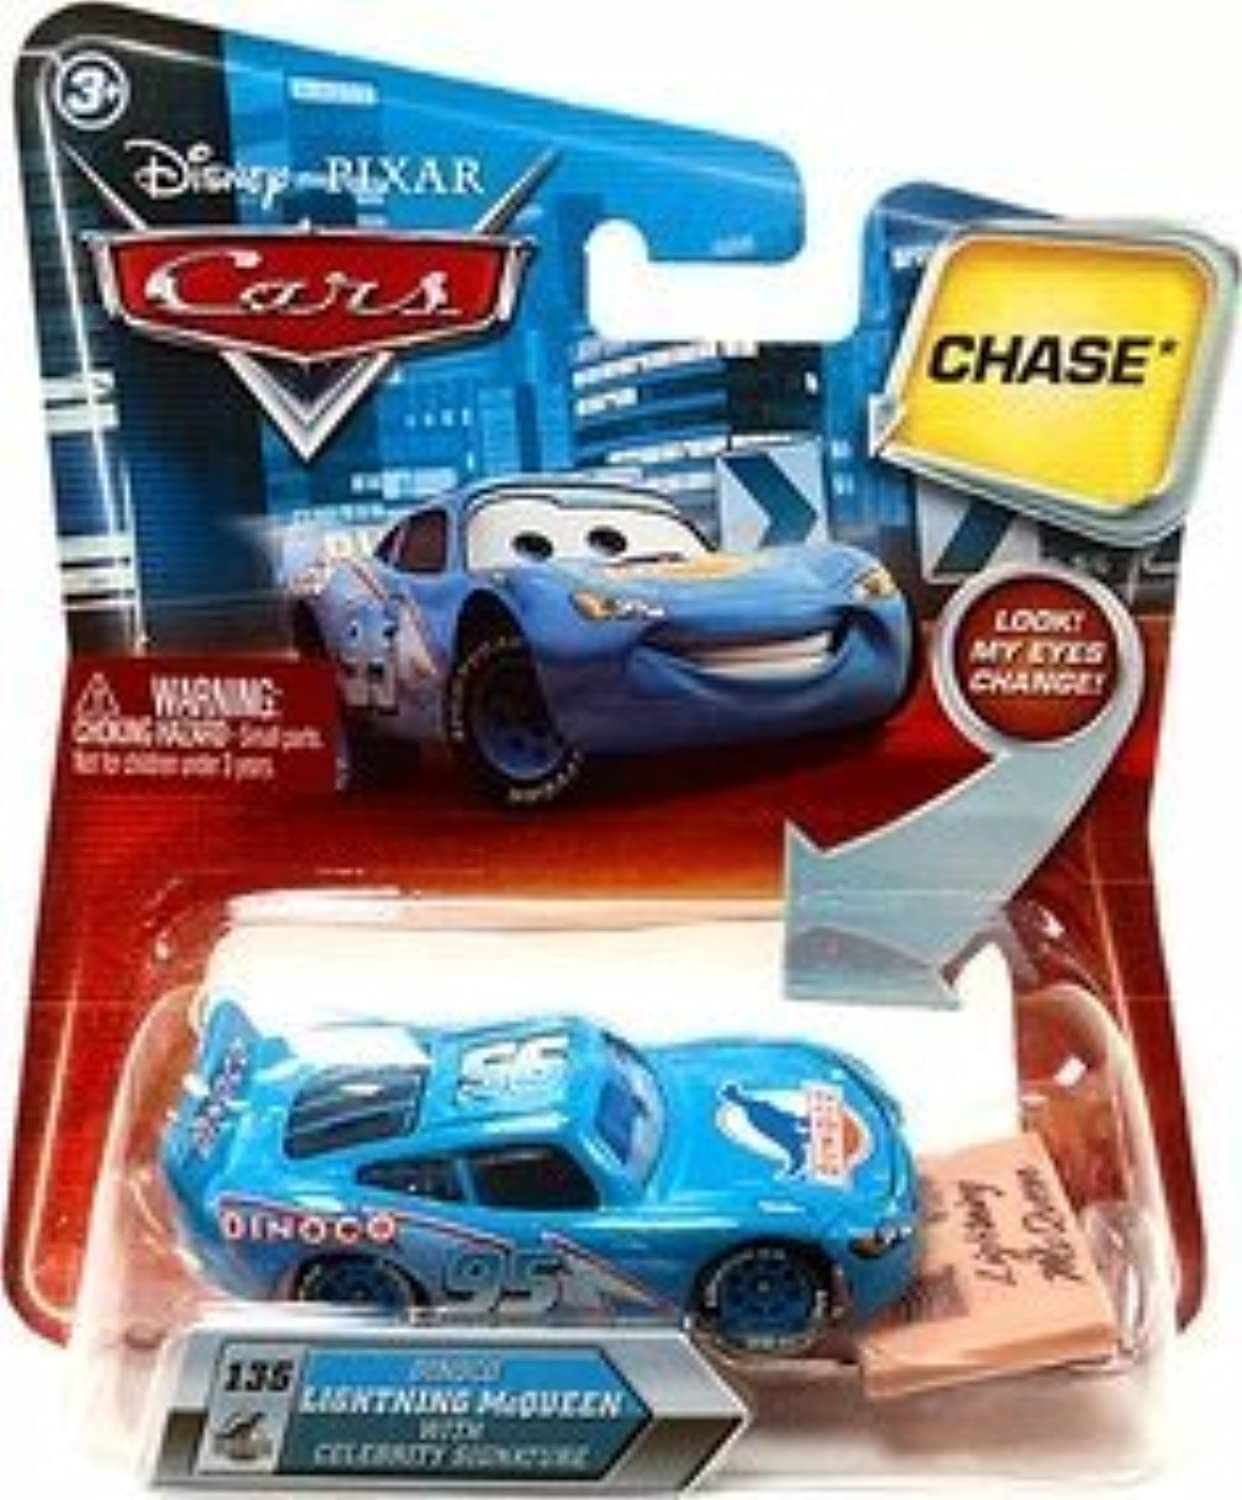 Mattel Dinoco Lightning Mcqueen With Celebrity Signature  135 W  Lenticular Eyes Disney   Pixar Cars 1 55 Scale Die-Cast Vehicle by Mattel